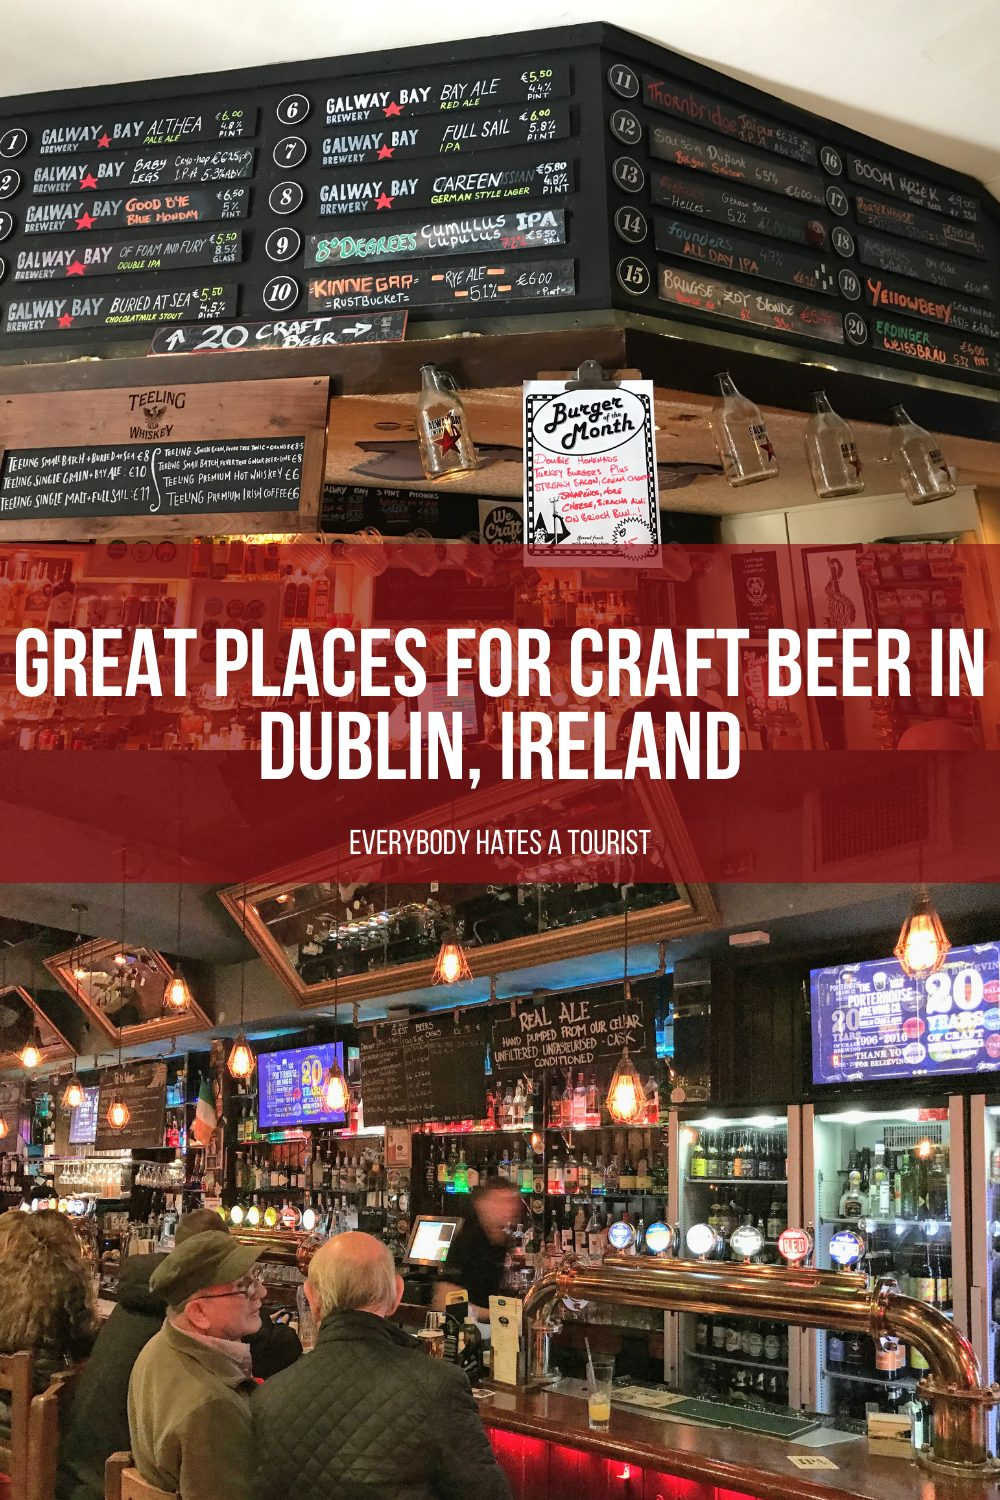 19 great places for craft beer in Dublin Ireland - 19 great places for craft beer in Dublin, Ireland